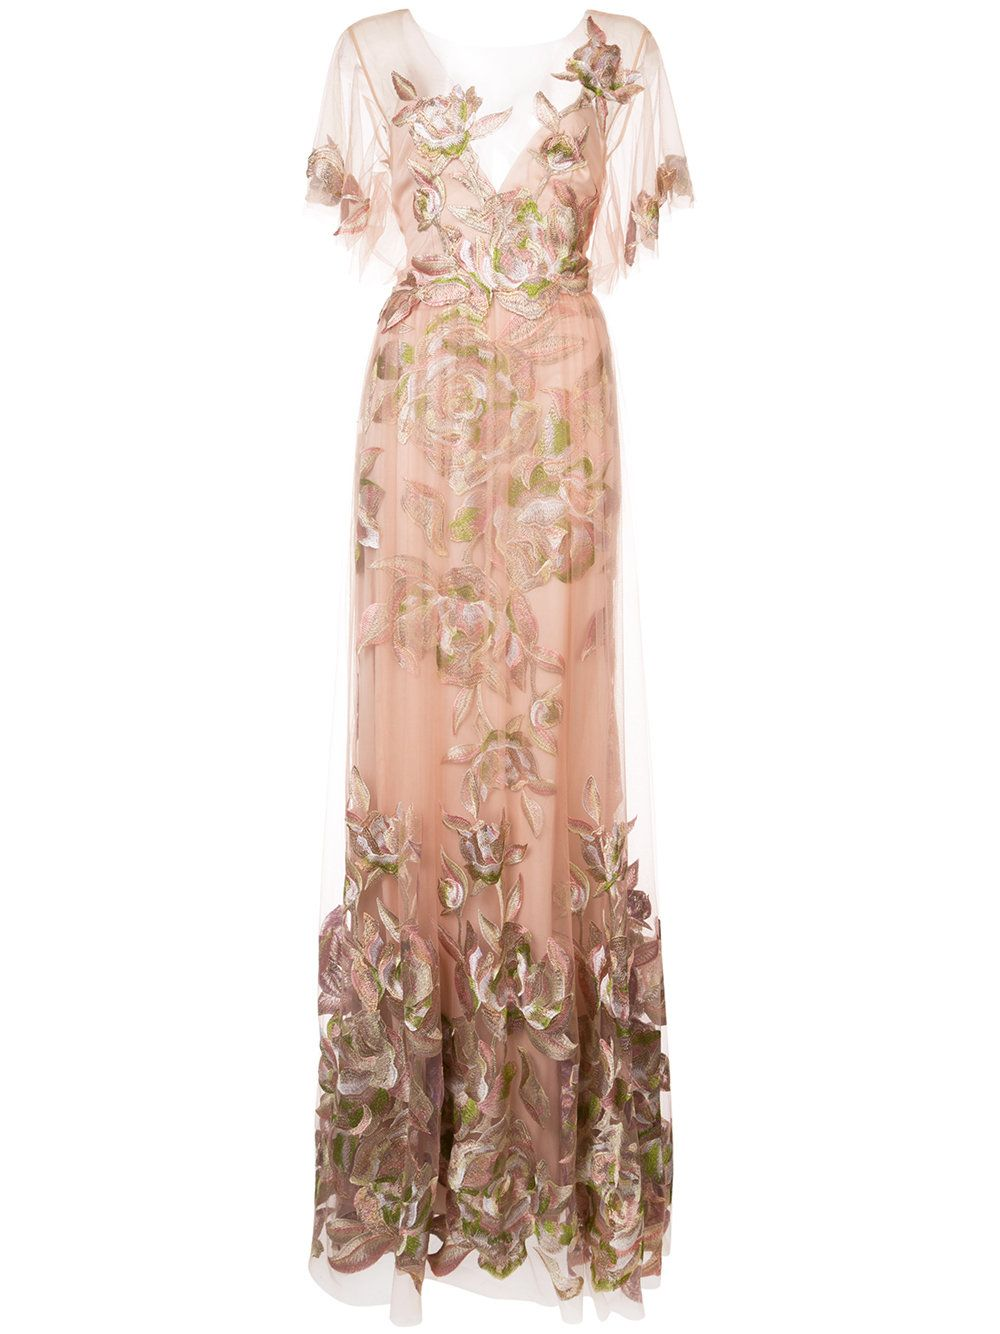 682d28a38f Marchesa Notte delicate floral gown | Fashion | Floral evening ...